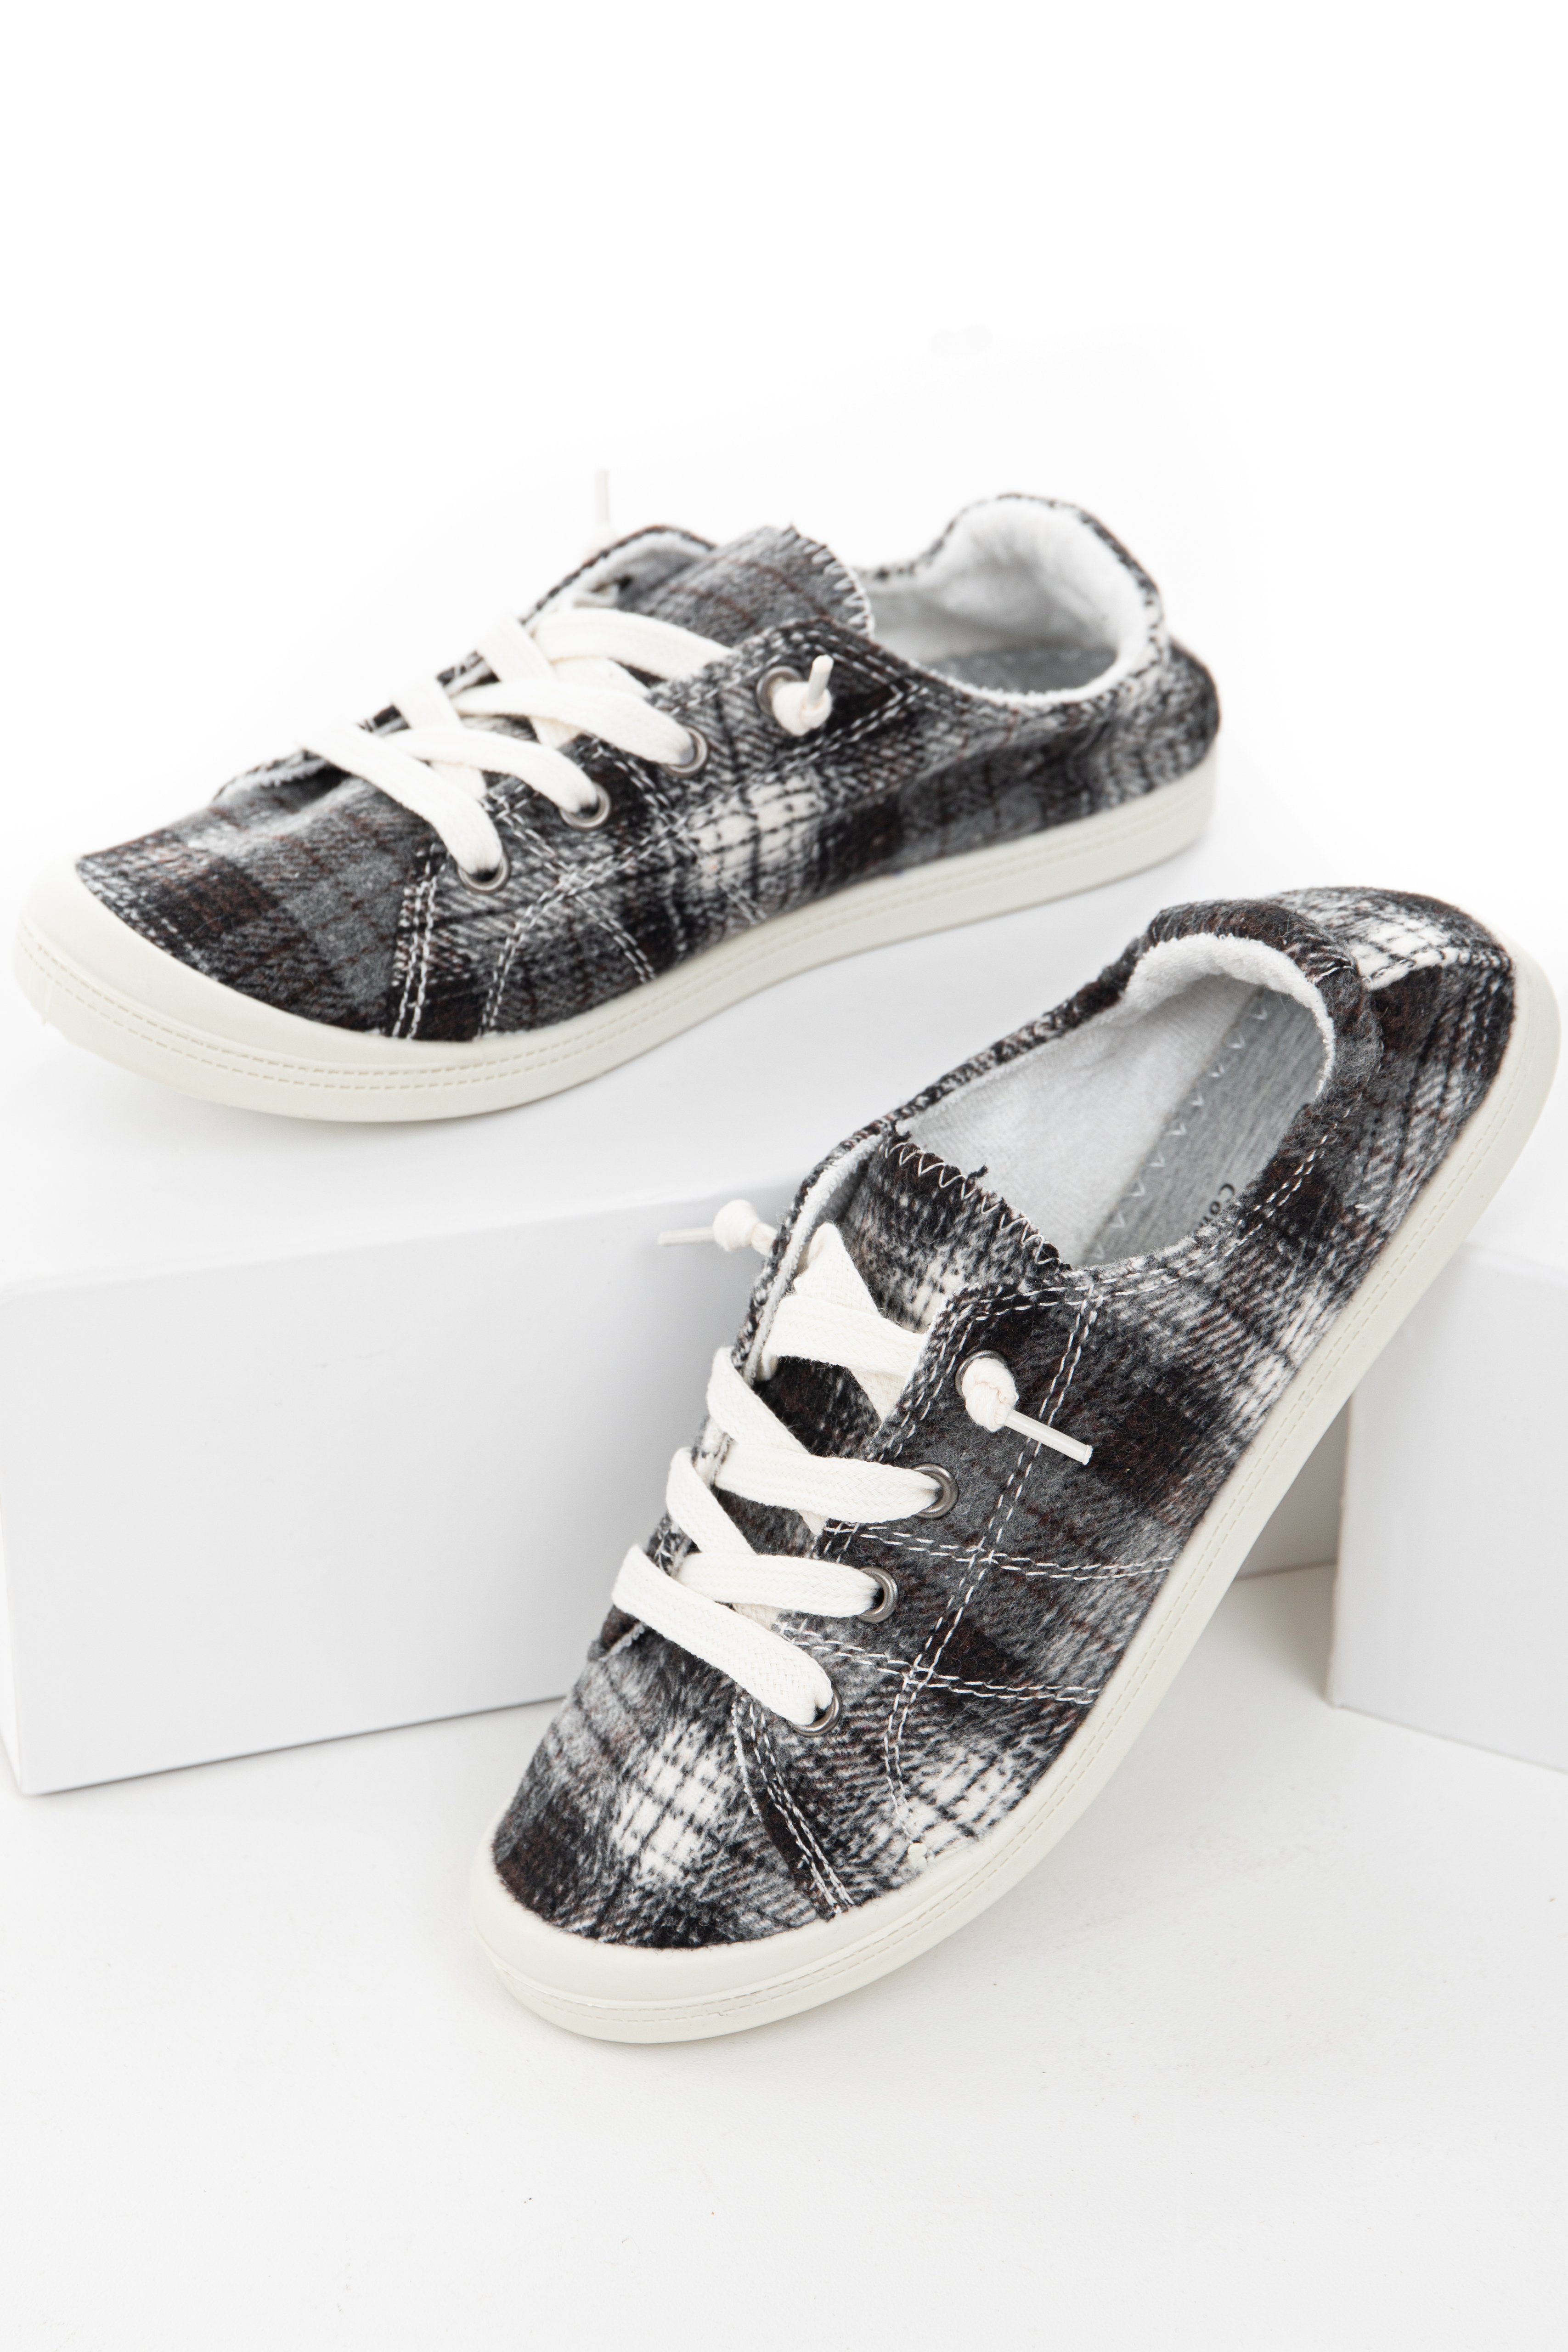 Charcoal and Black Plaid Sneakers with White Shoelaces